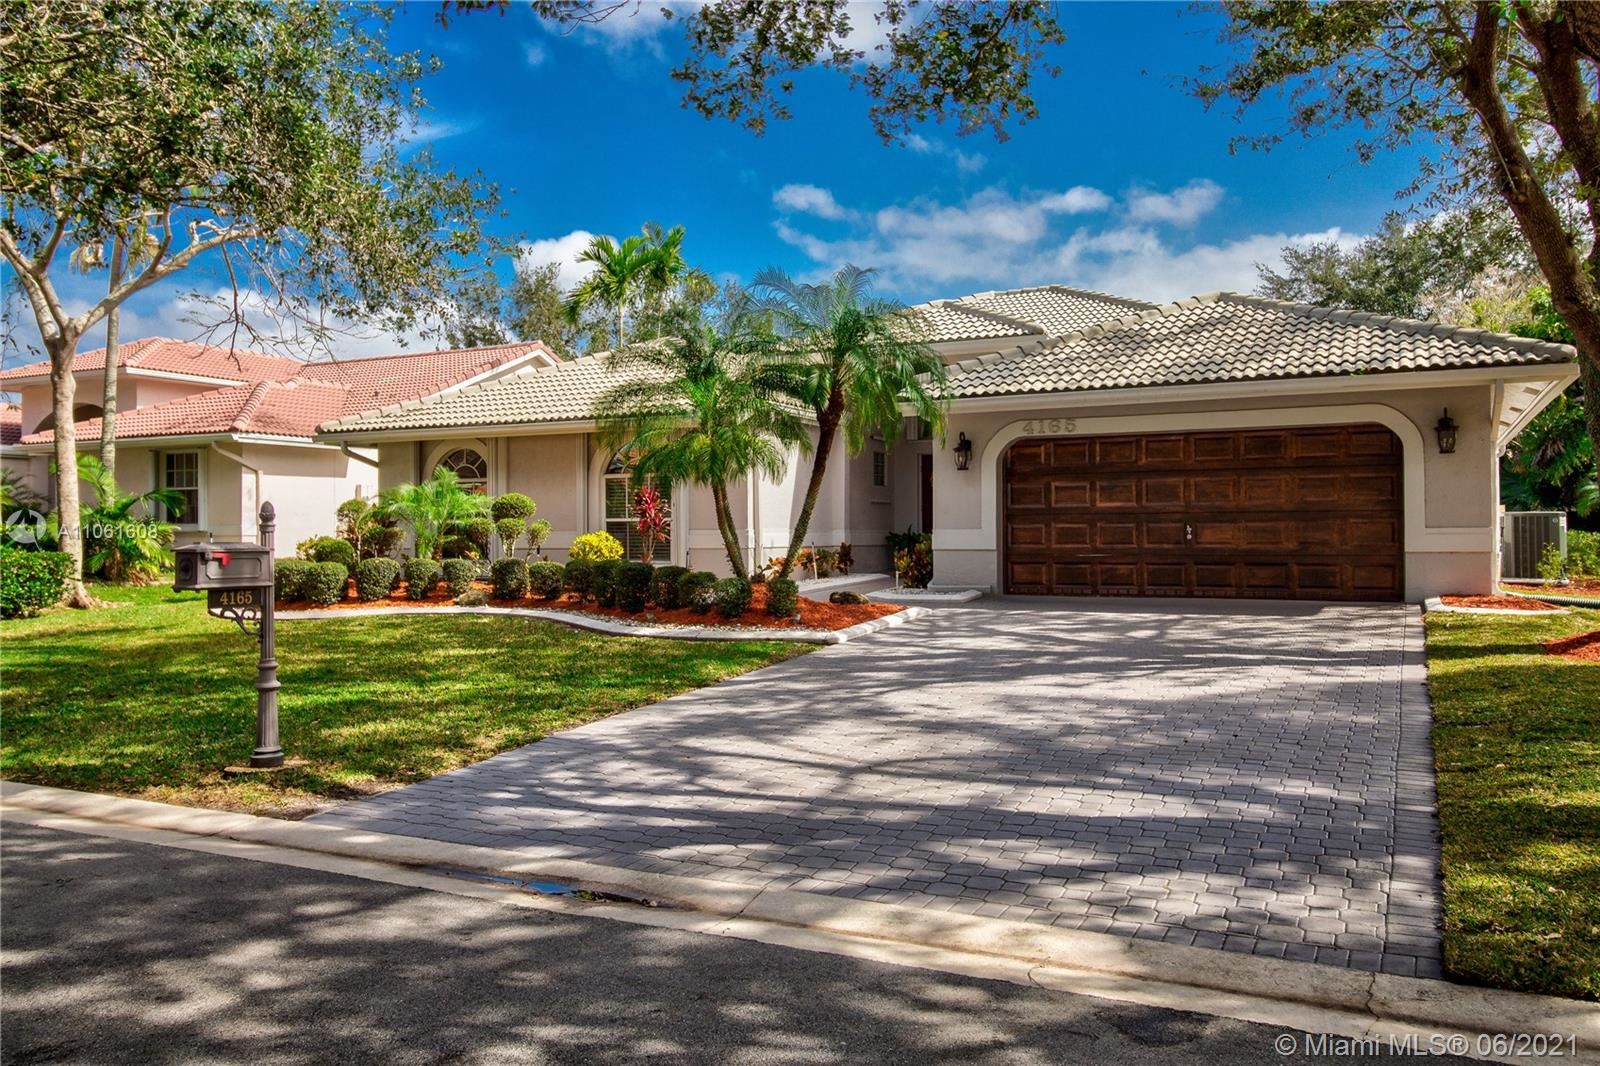 4165 NW 65th Ave, Coral Springs, FL 33067 - #: A11061608